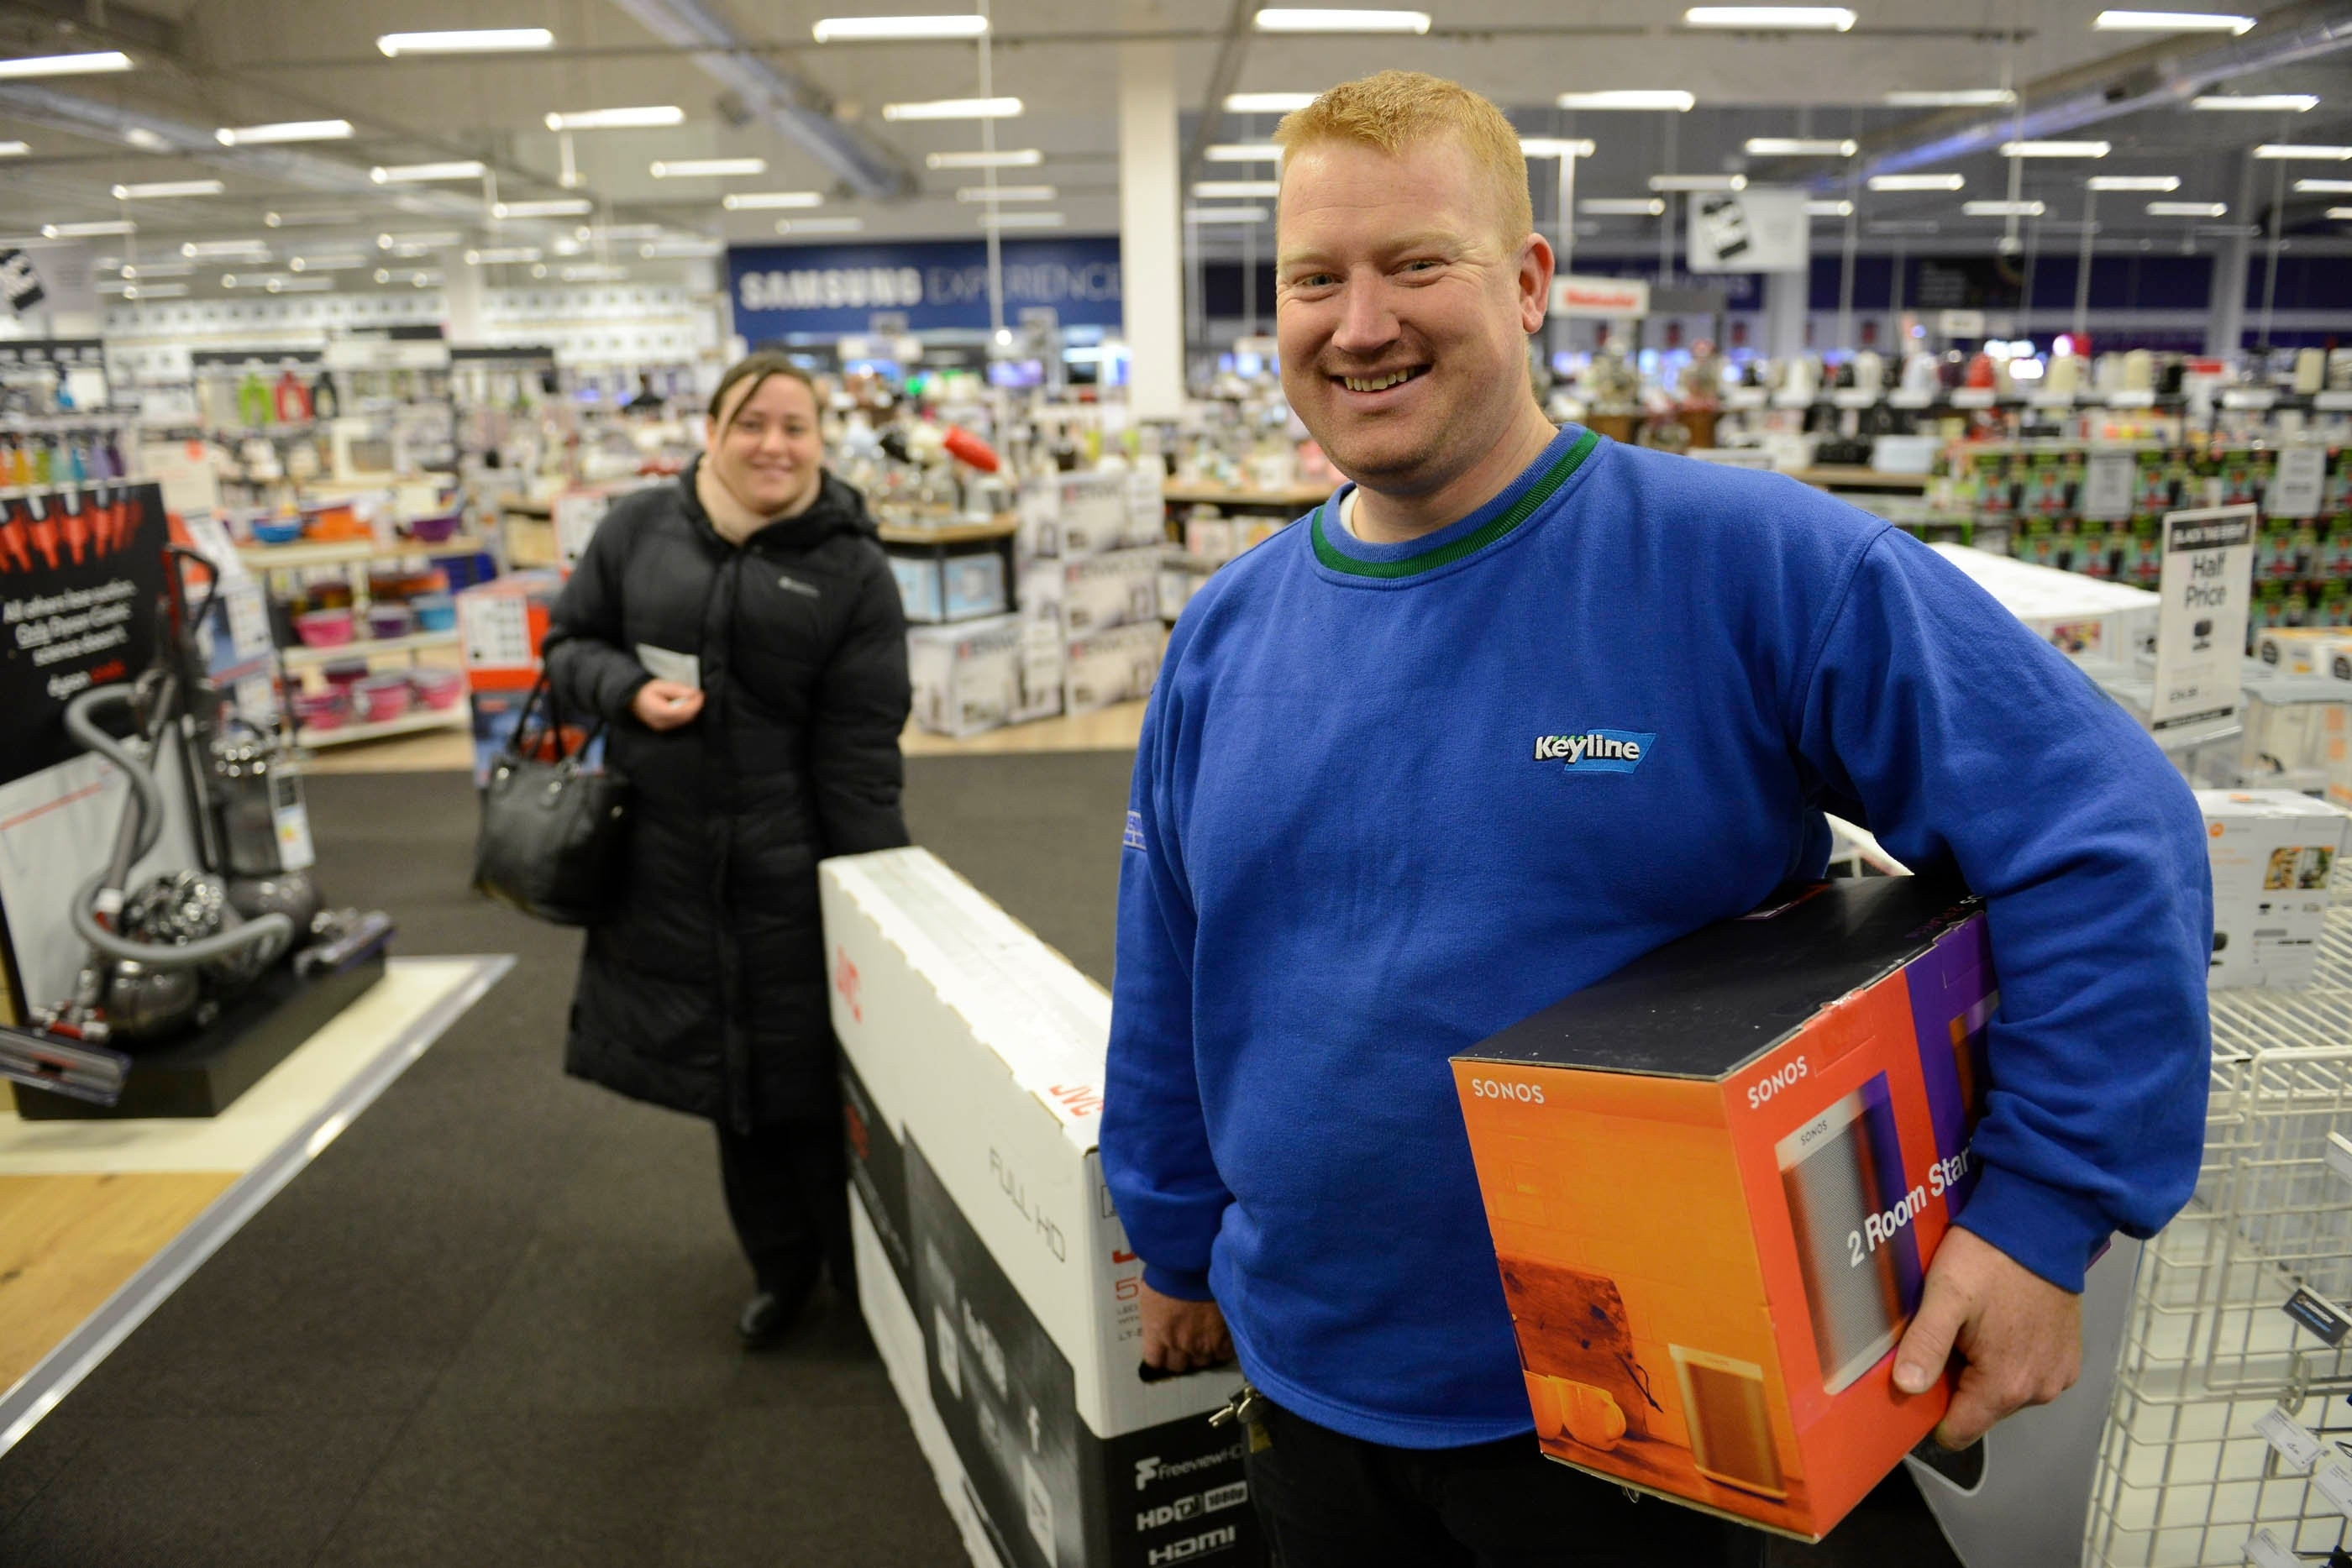 Lesley Ann O'Donnel and husband David O'Donnel, from Glasgow, one of the first customers in the shop, bags a bargain at Currys PC World, intu Braehead, Glasgow, for Black Friday sales, November 27, 2015. Large crowds did not materialise despite the bargains on offer with very few shoppers being in the store shortly after opening at 6am.